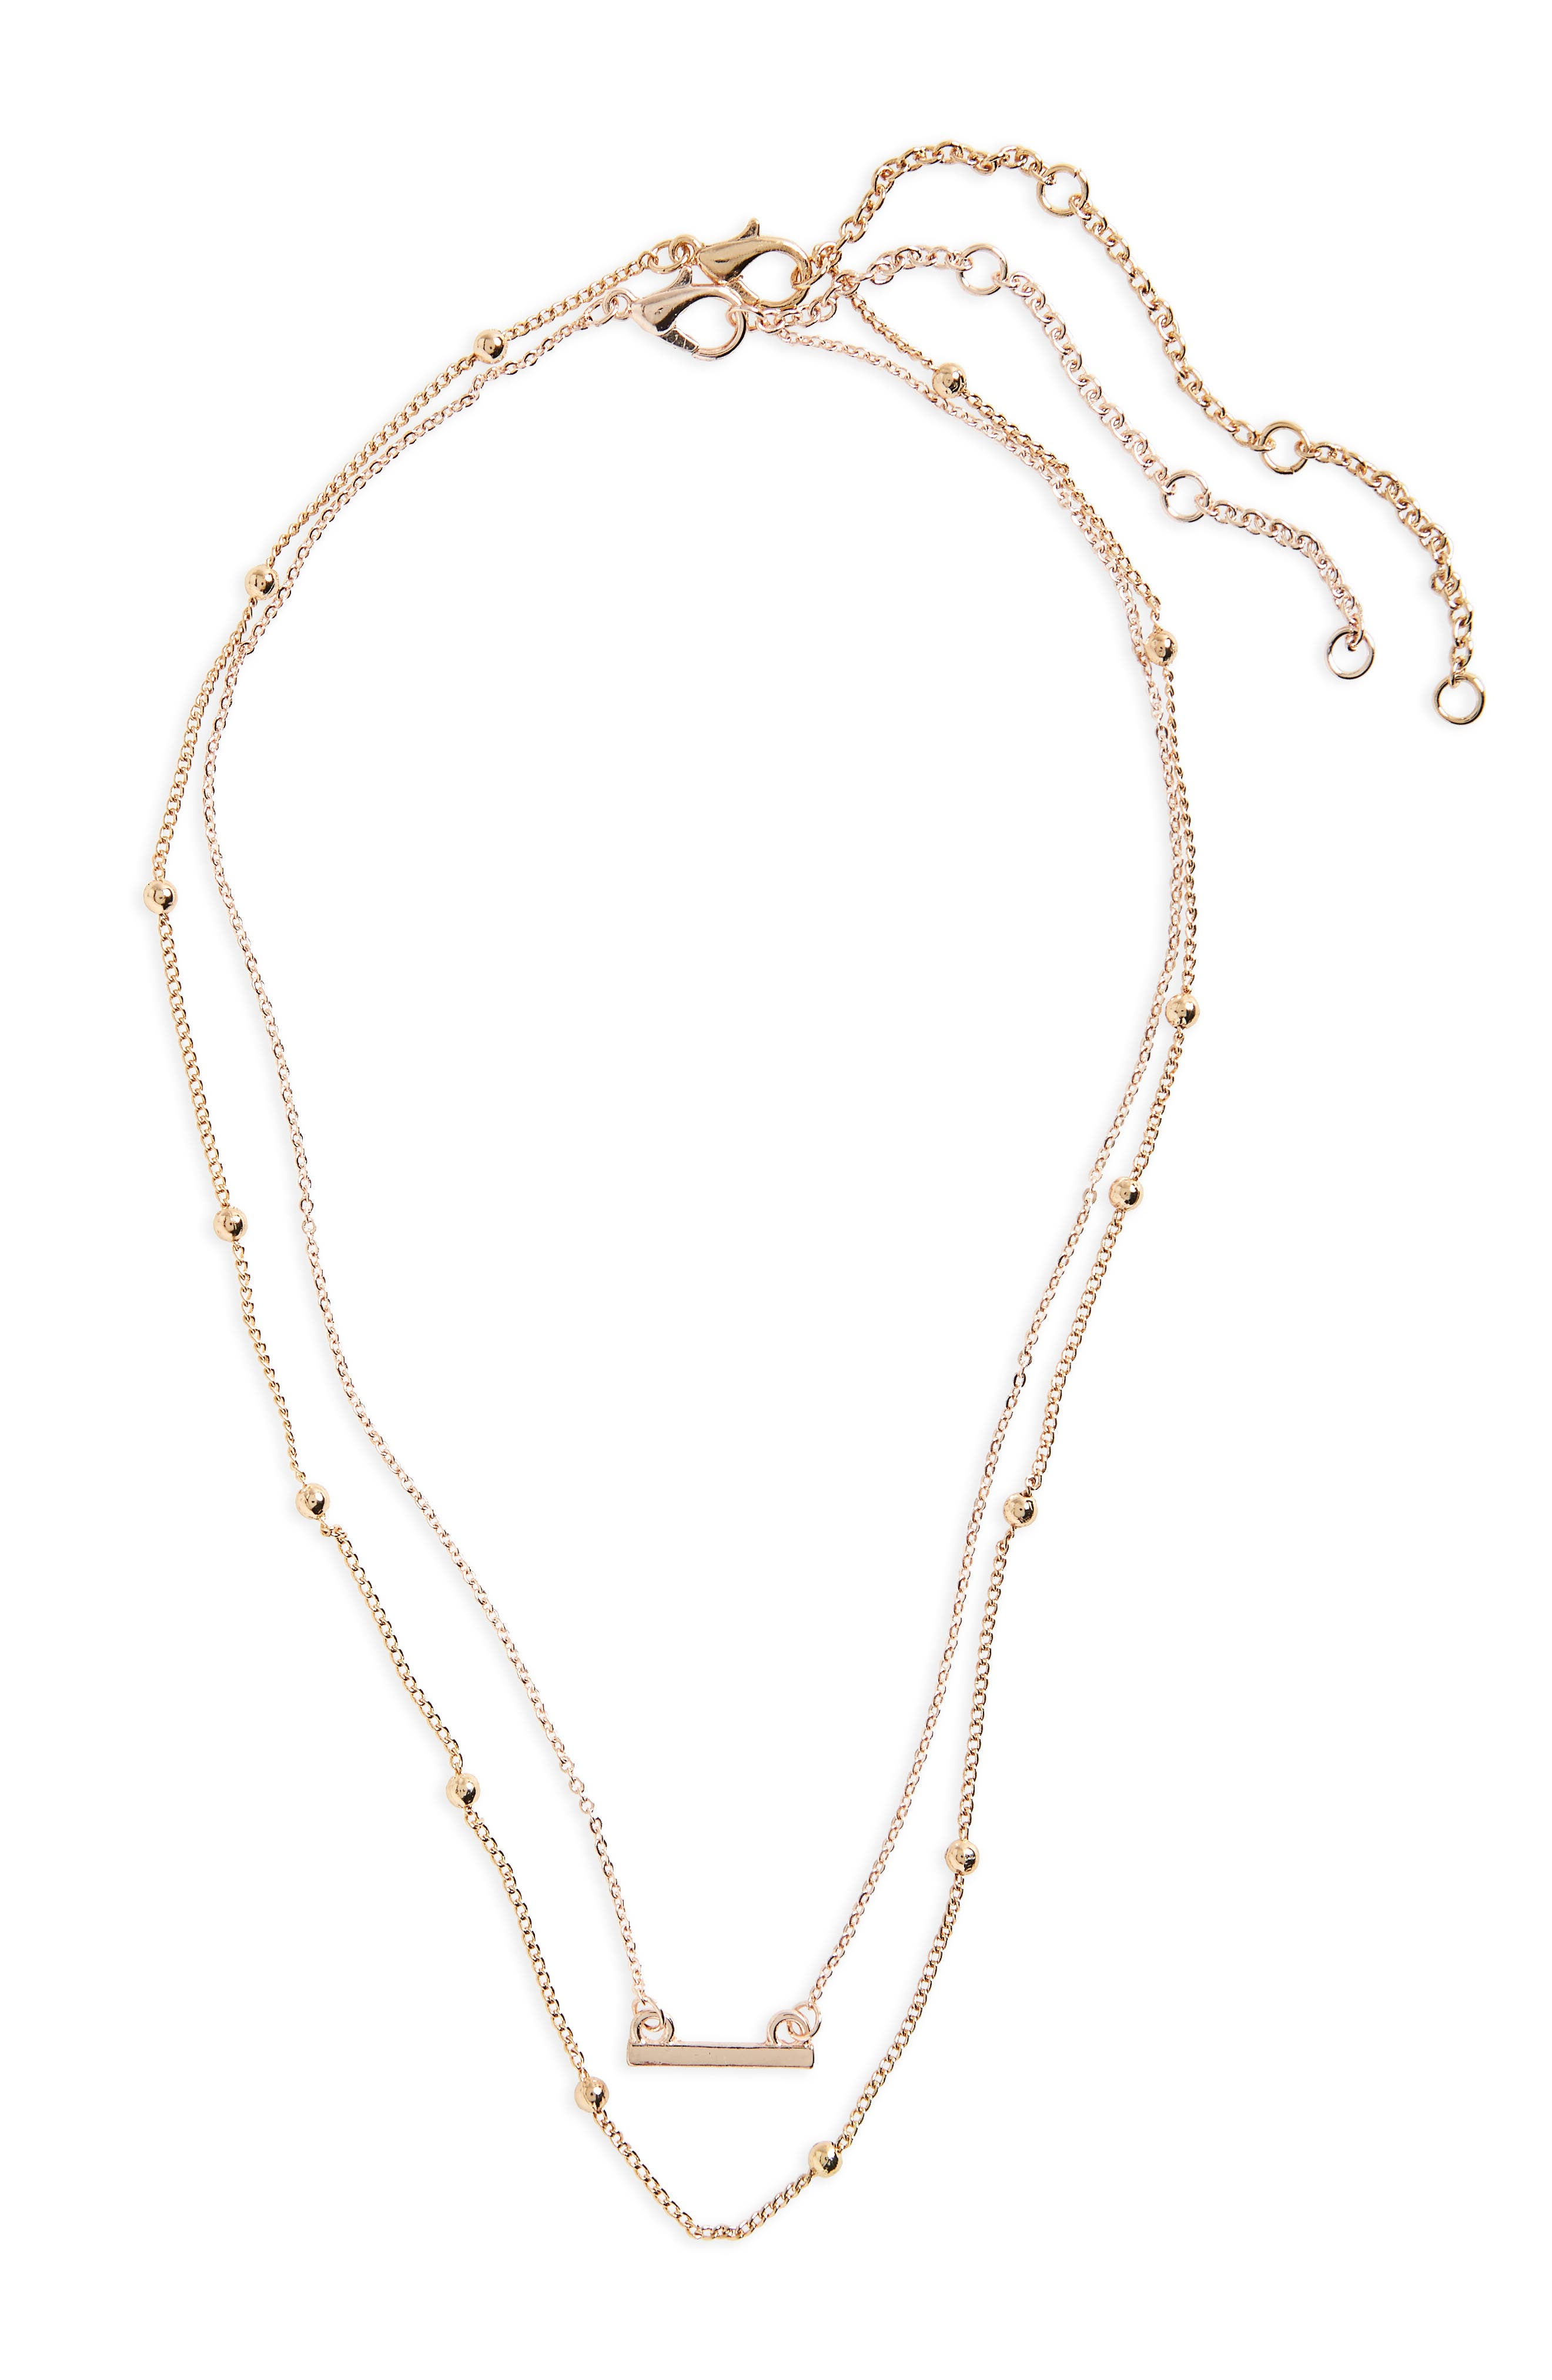 2-Pack Bar & Bead Necklaces,                         Main,                         color, Gold